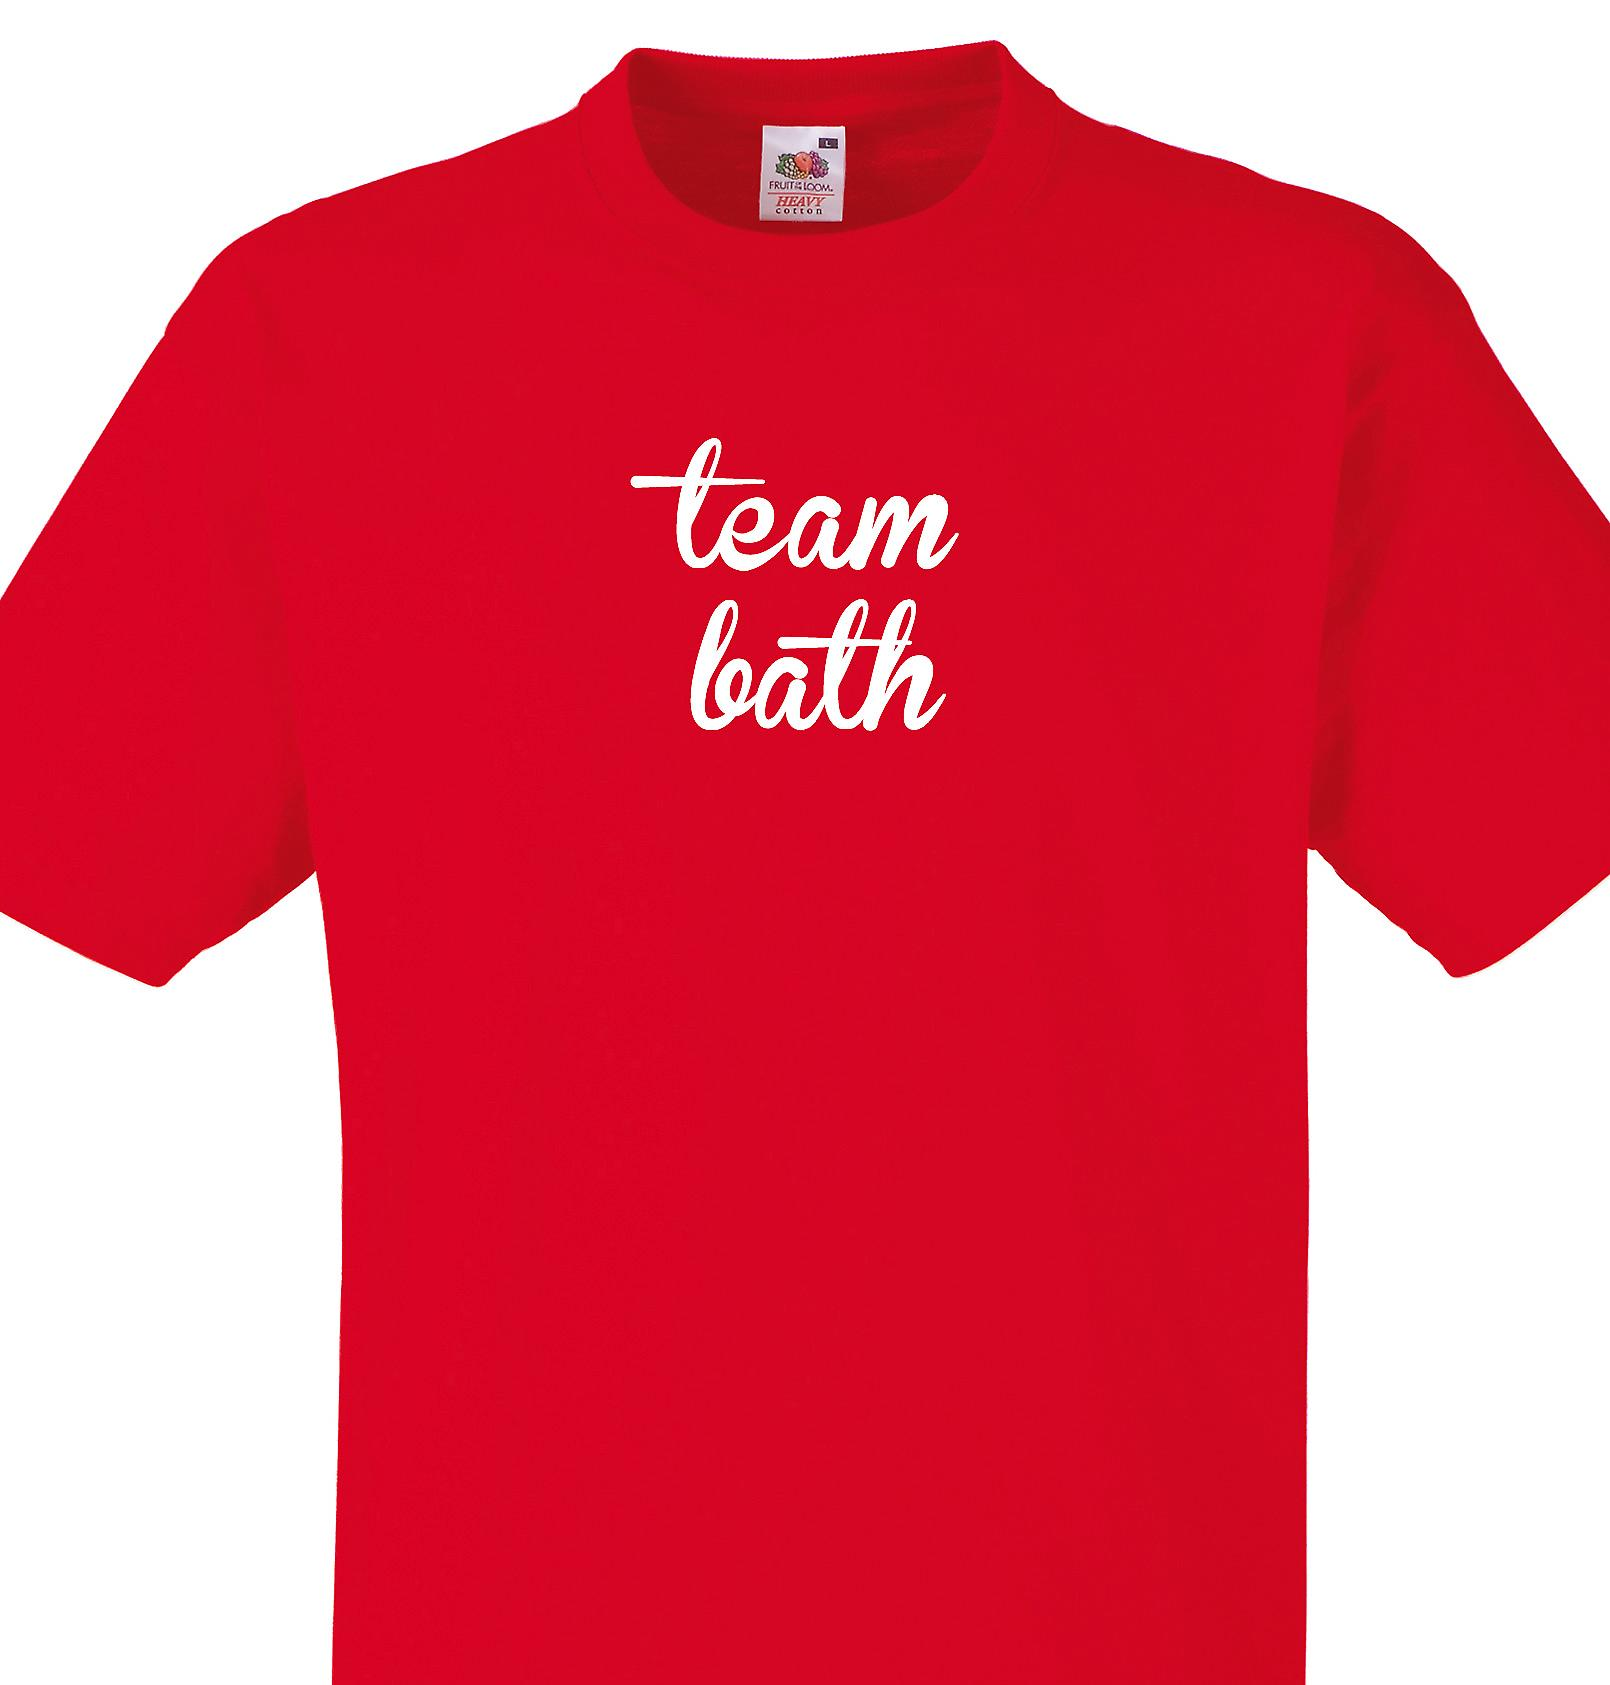 Team Bath Red T shirt